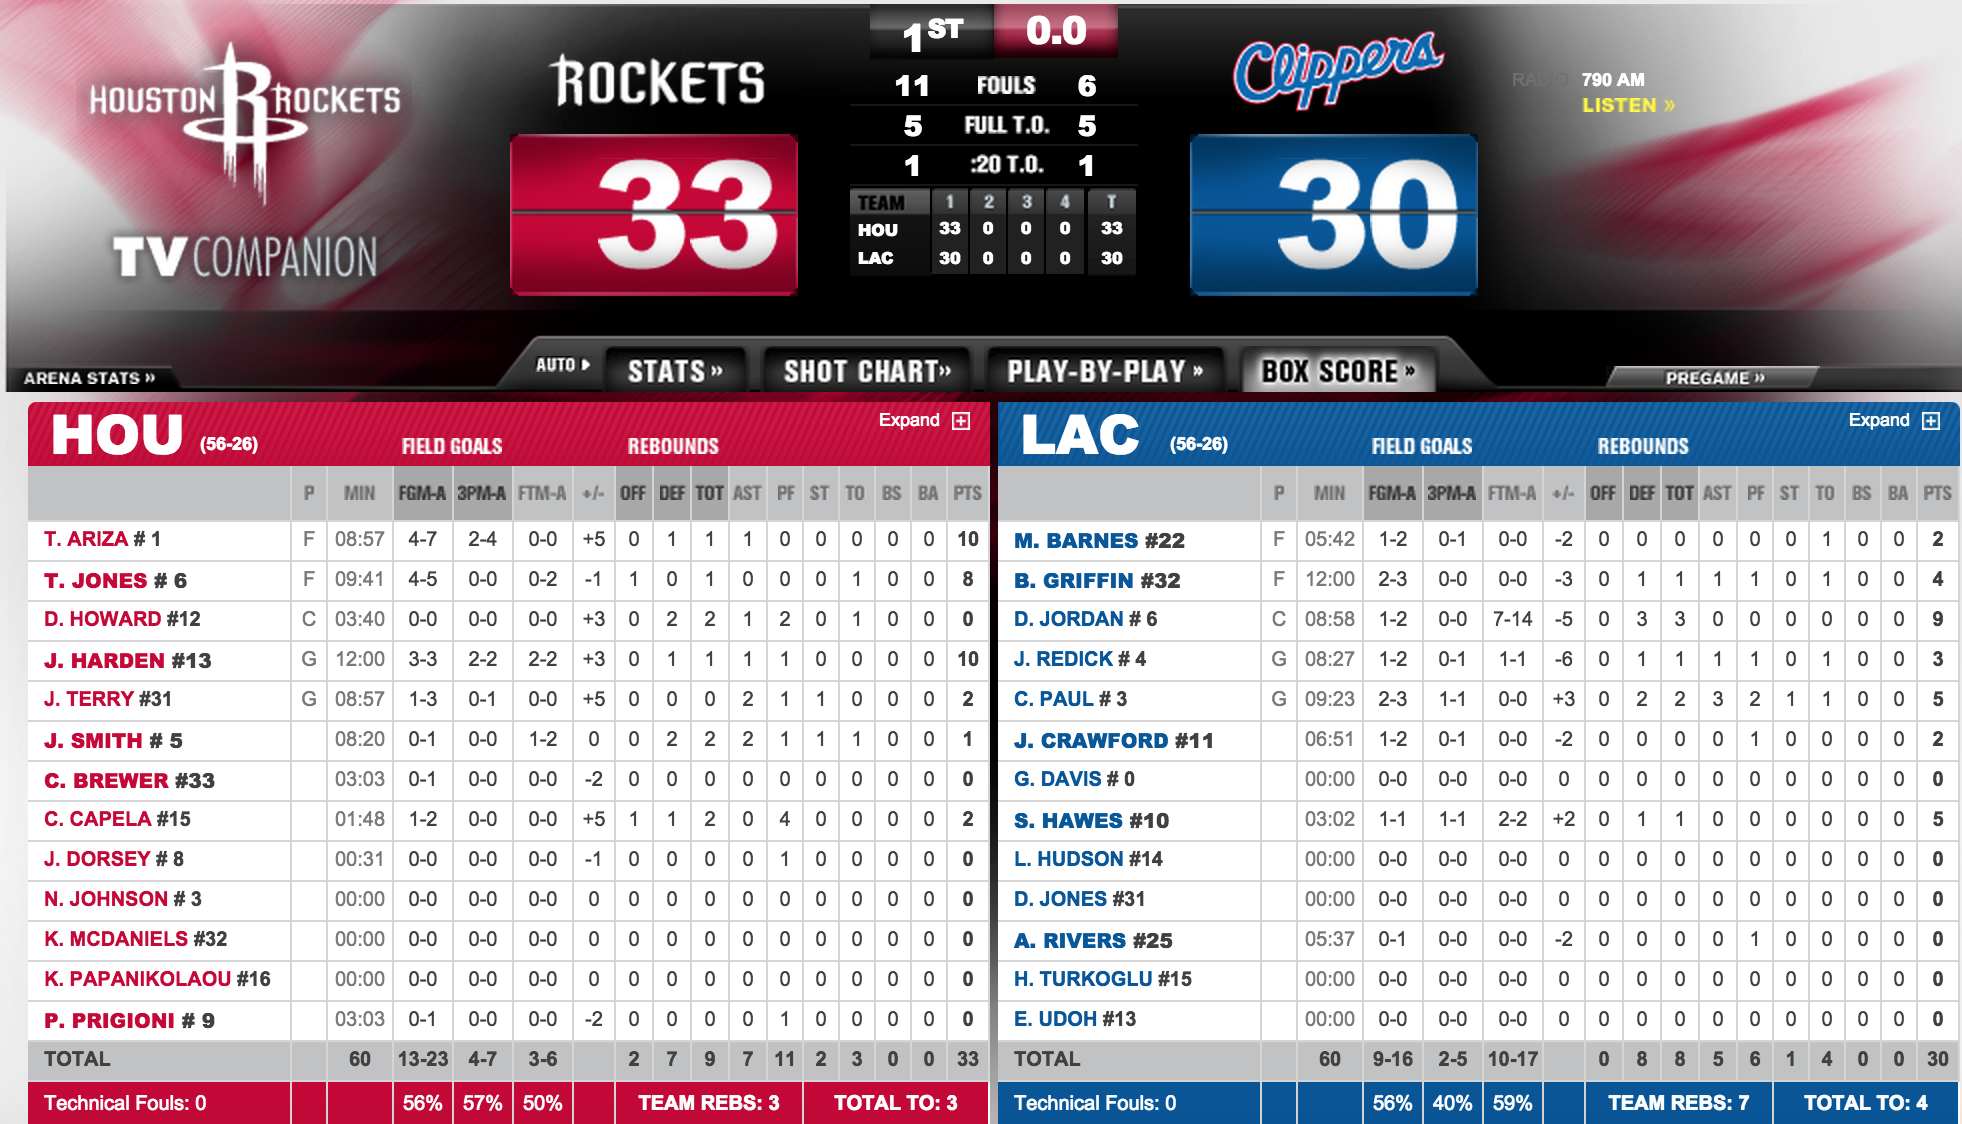 Game 4 Clippers v Rockets